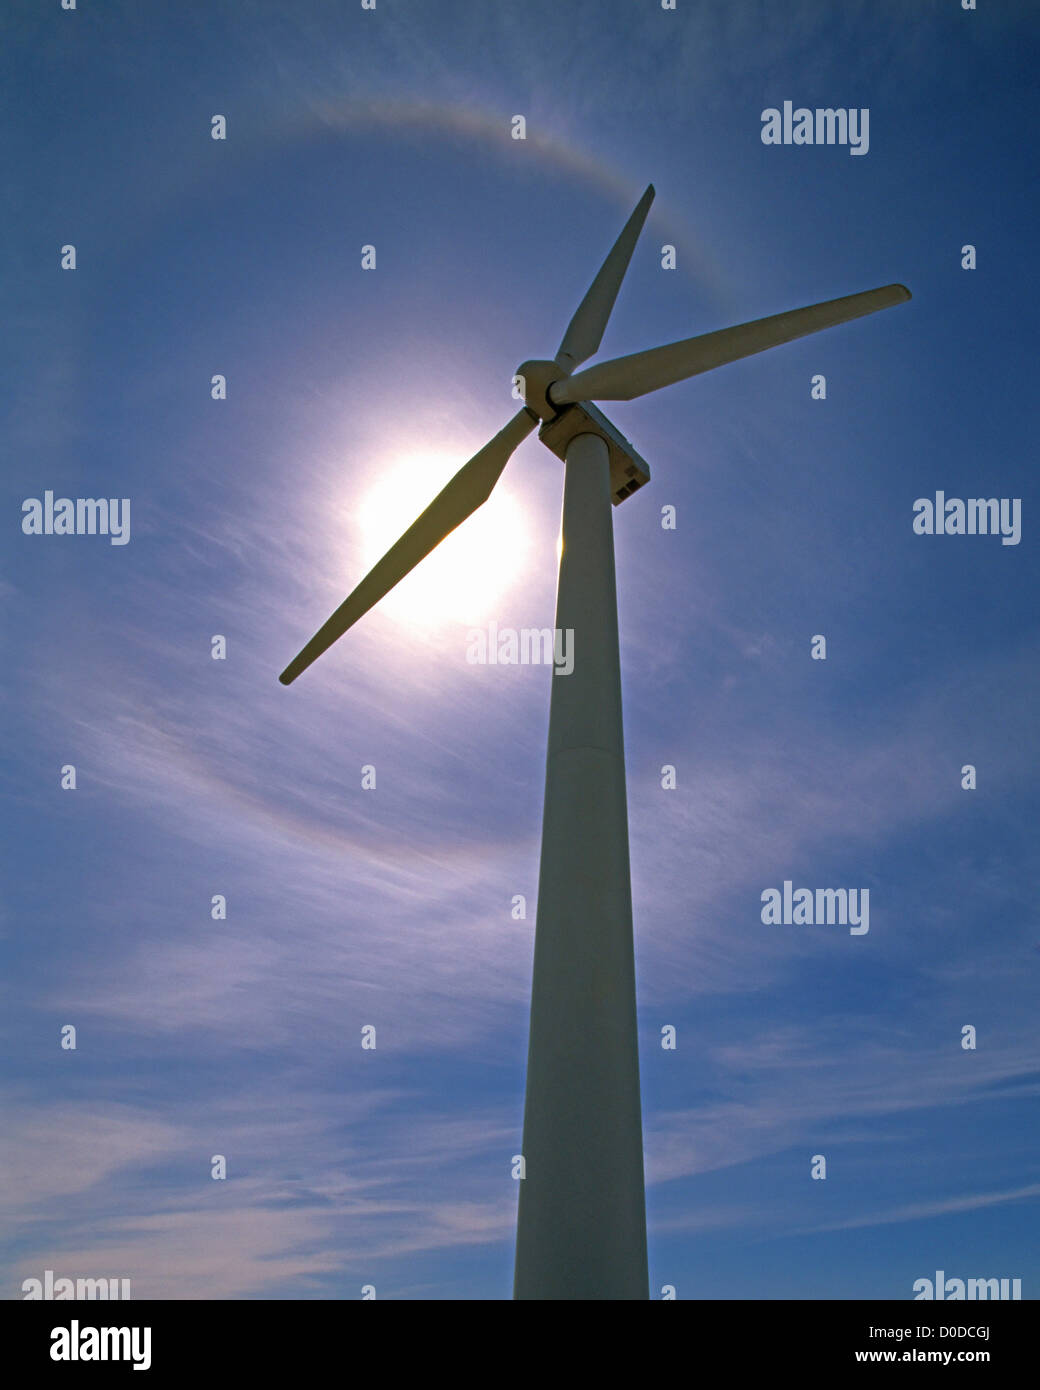 A Layer of Cirrostratus Forms a Halo Above a Wind Turbine - Stock Image